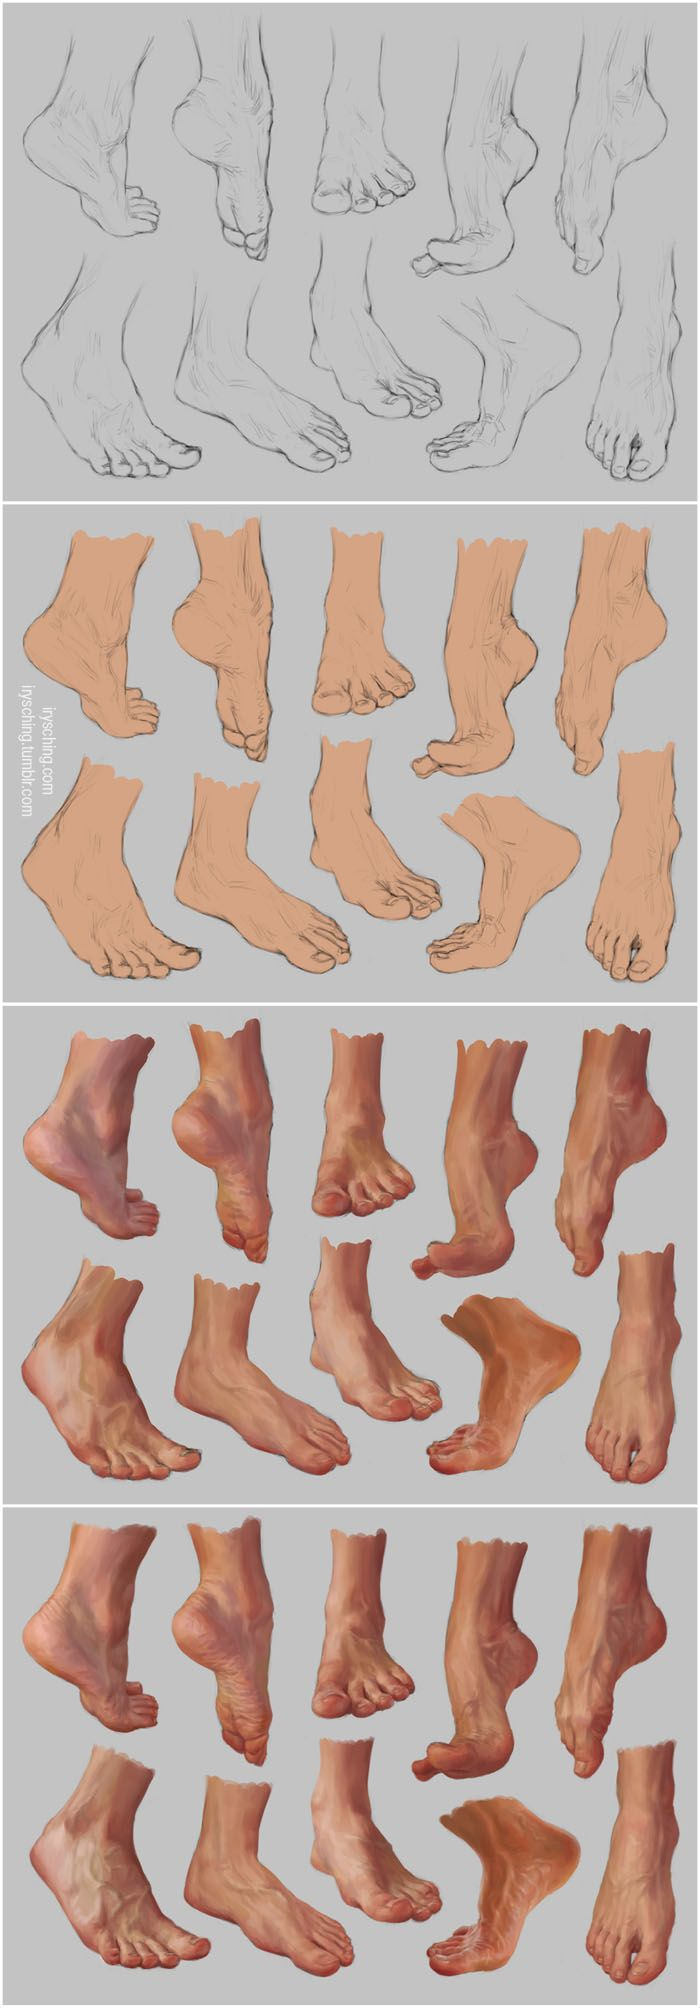 Feet Study 2 - Steps by ~irysching on deviantART via cgpin.com